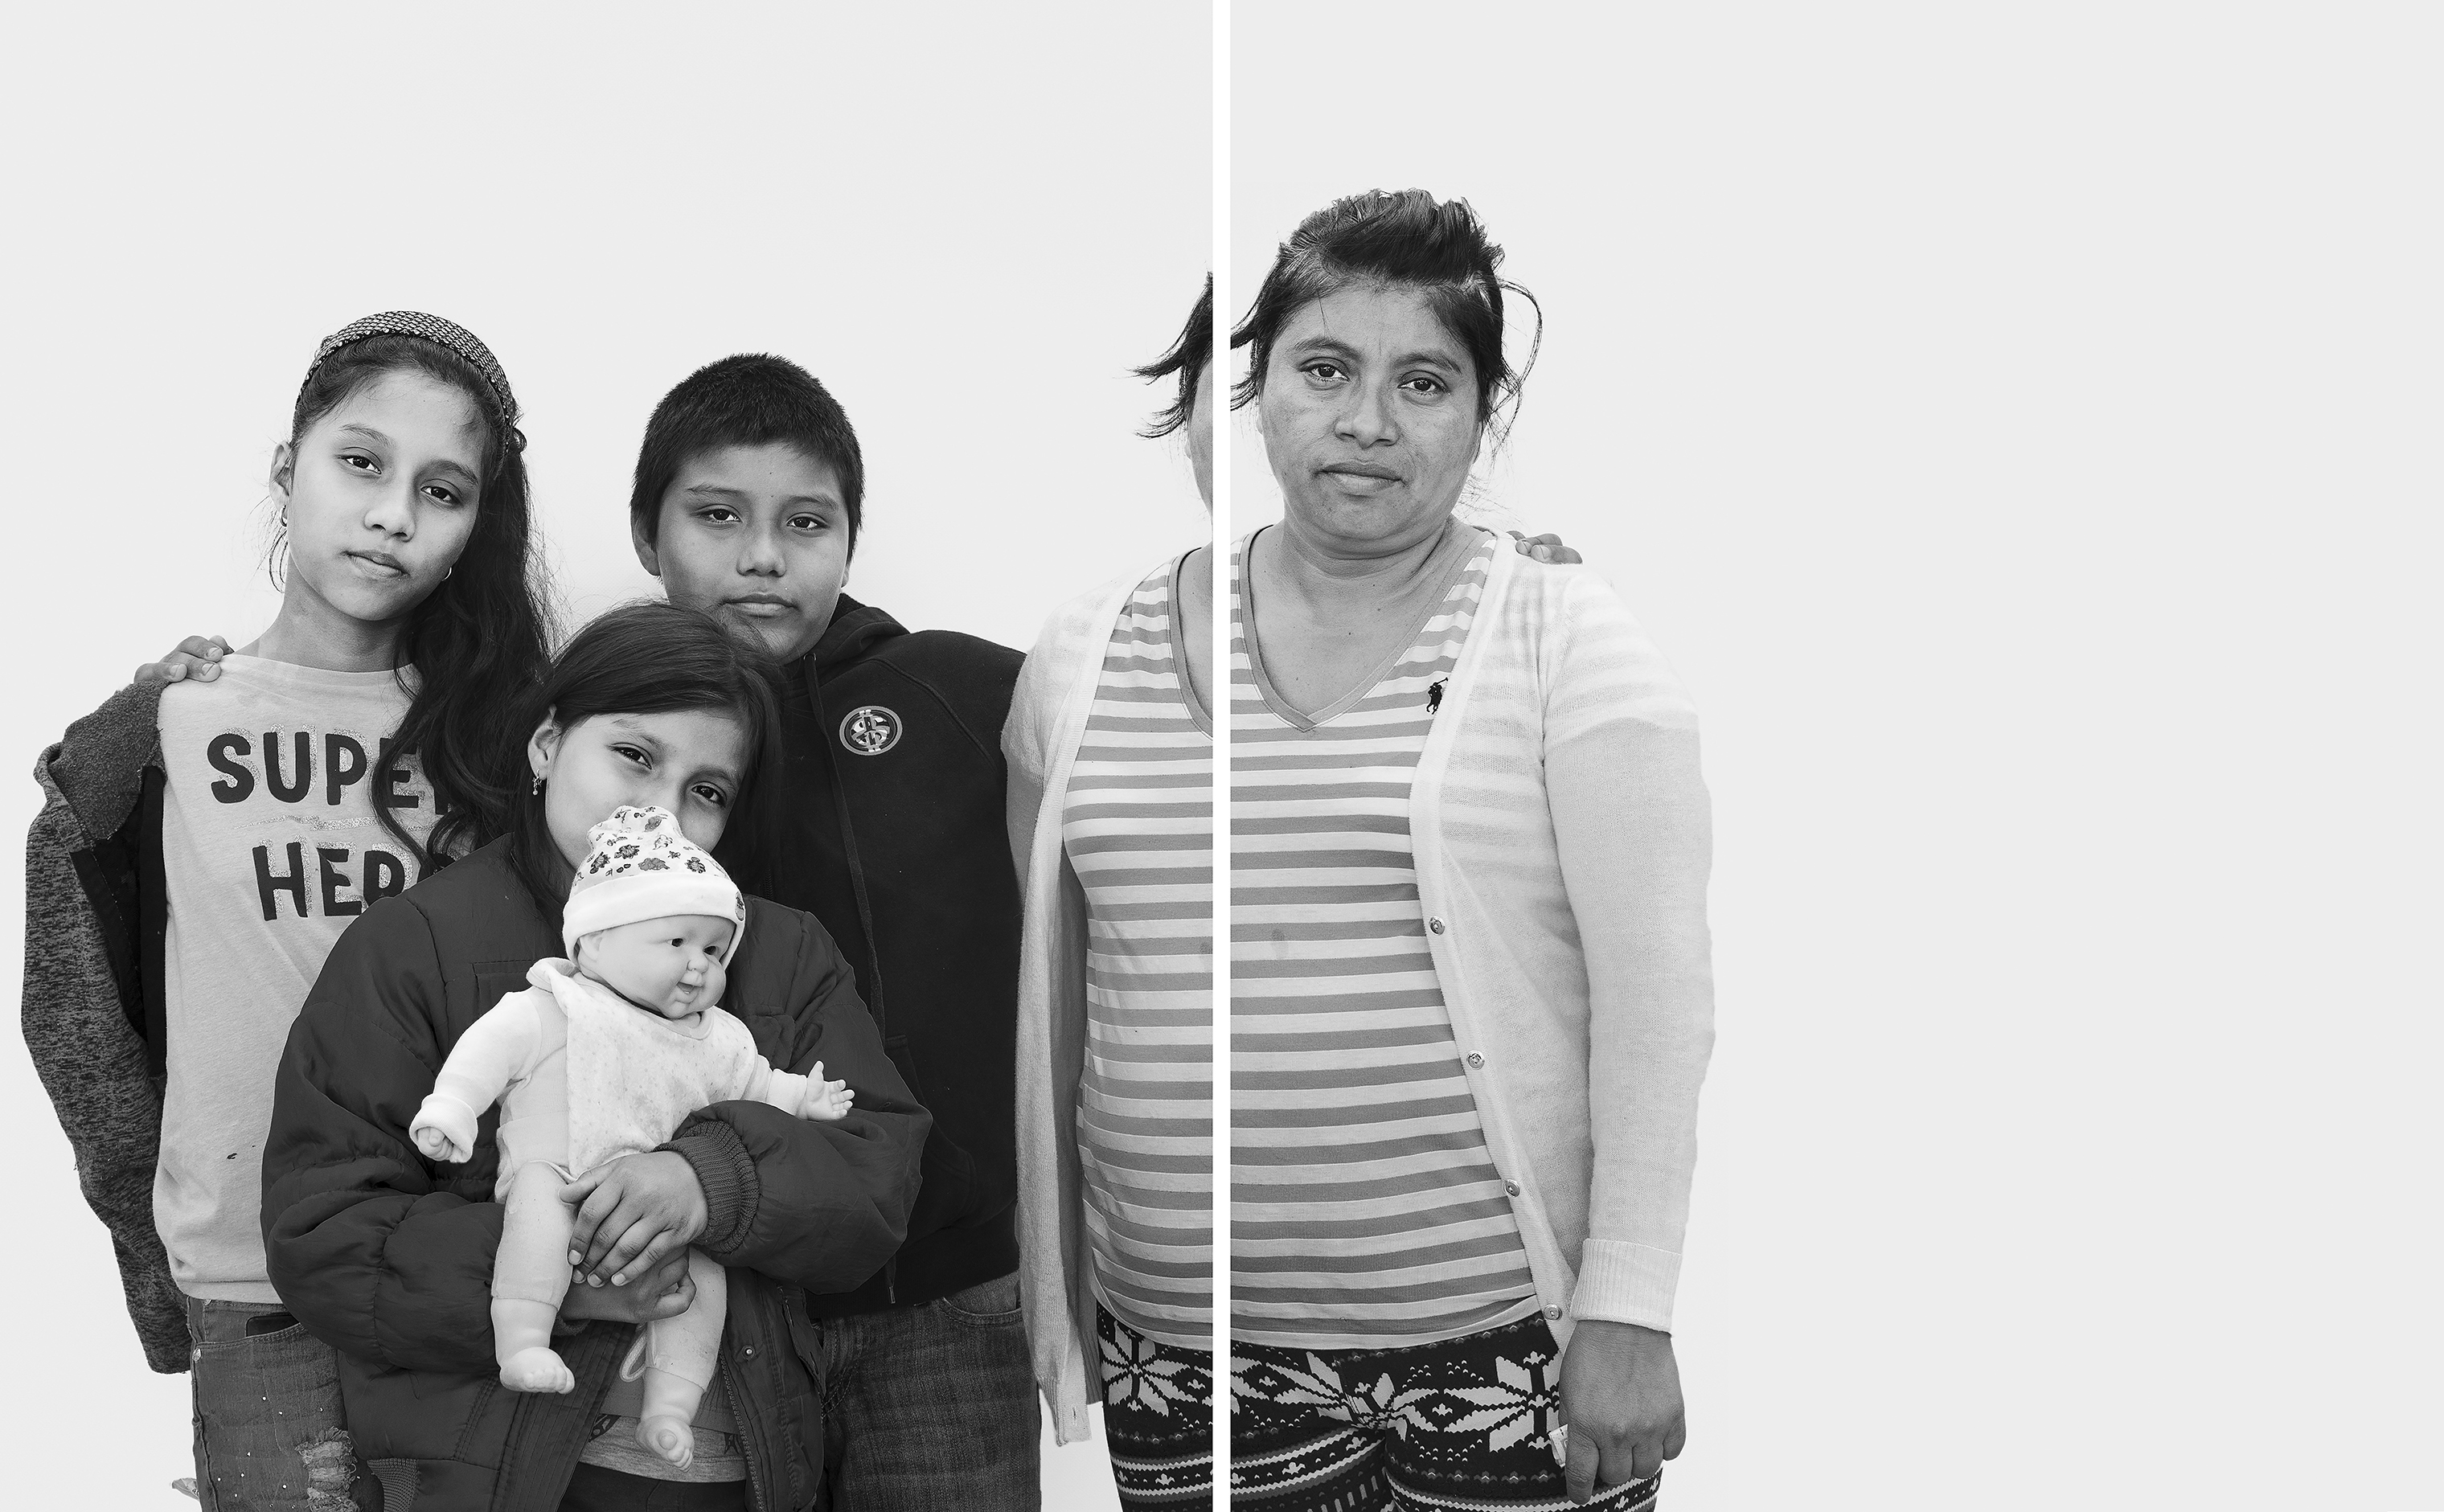 Violeta Monterroso, 42, and her children, Kenia, 12; Isaac, 11; and Yeimi, 9. Monterroso fled Guatemala in mid-October 2018 with her husband, Cándido Calderón, 42. Gang members threatened to kill Calderón and Monterroso's children if they did not pay roughly $1,200—the equivalent of five months' income from the family's juice stall.